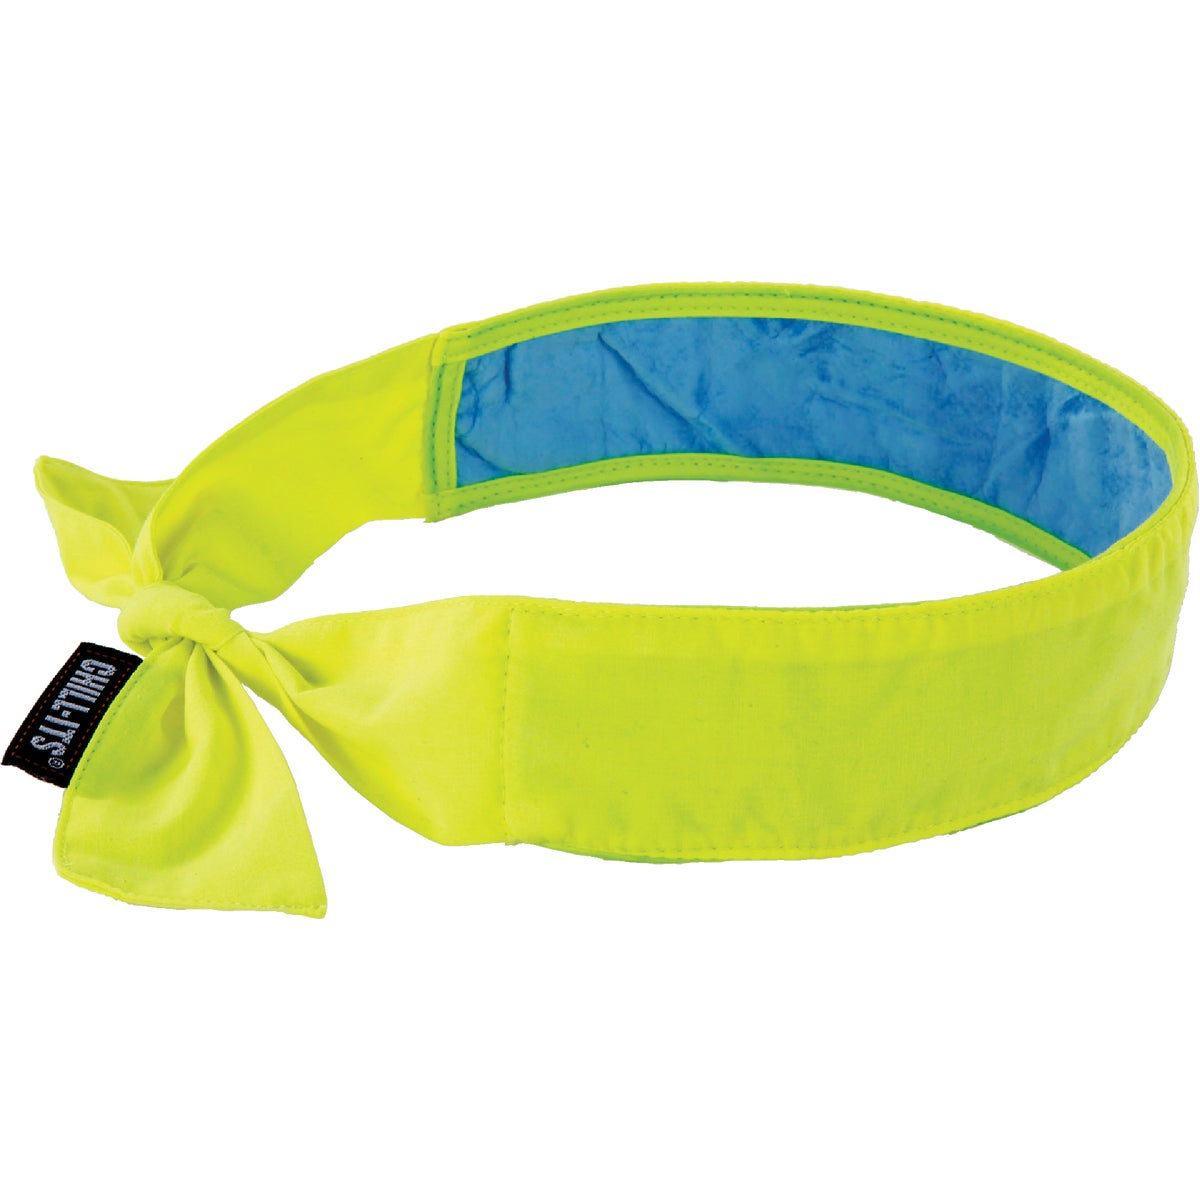 LIME COOL TOWEL BANDANA - 12566 by Ergodyne Incom